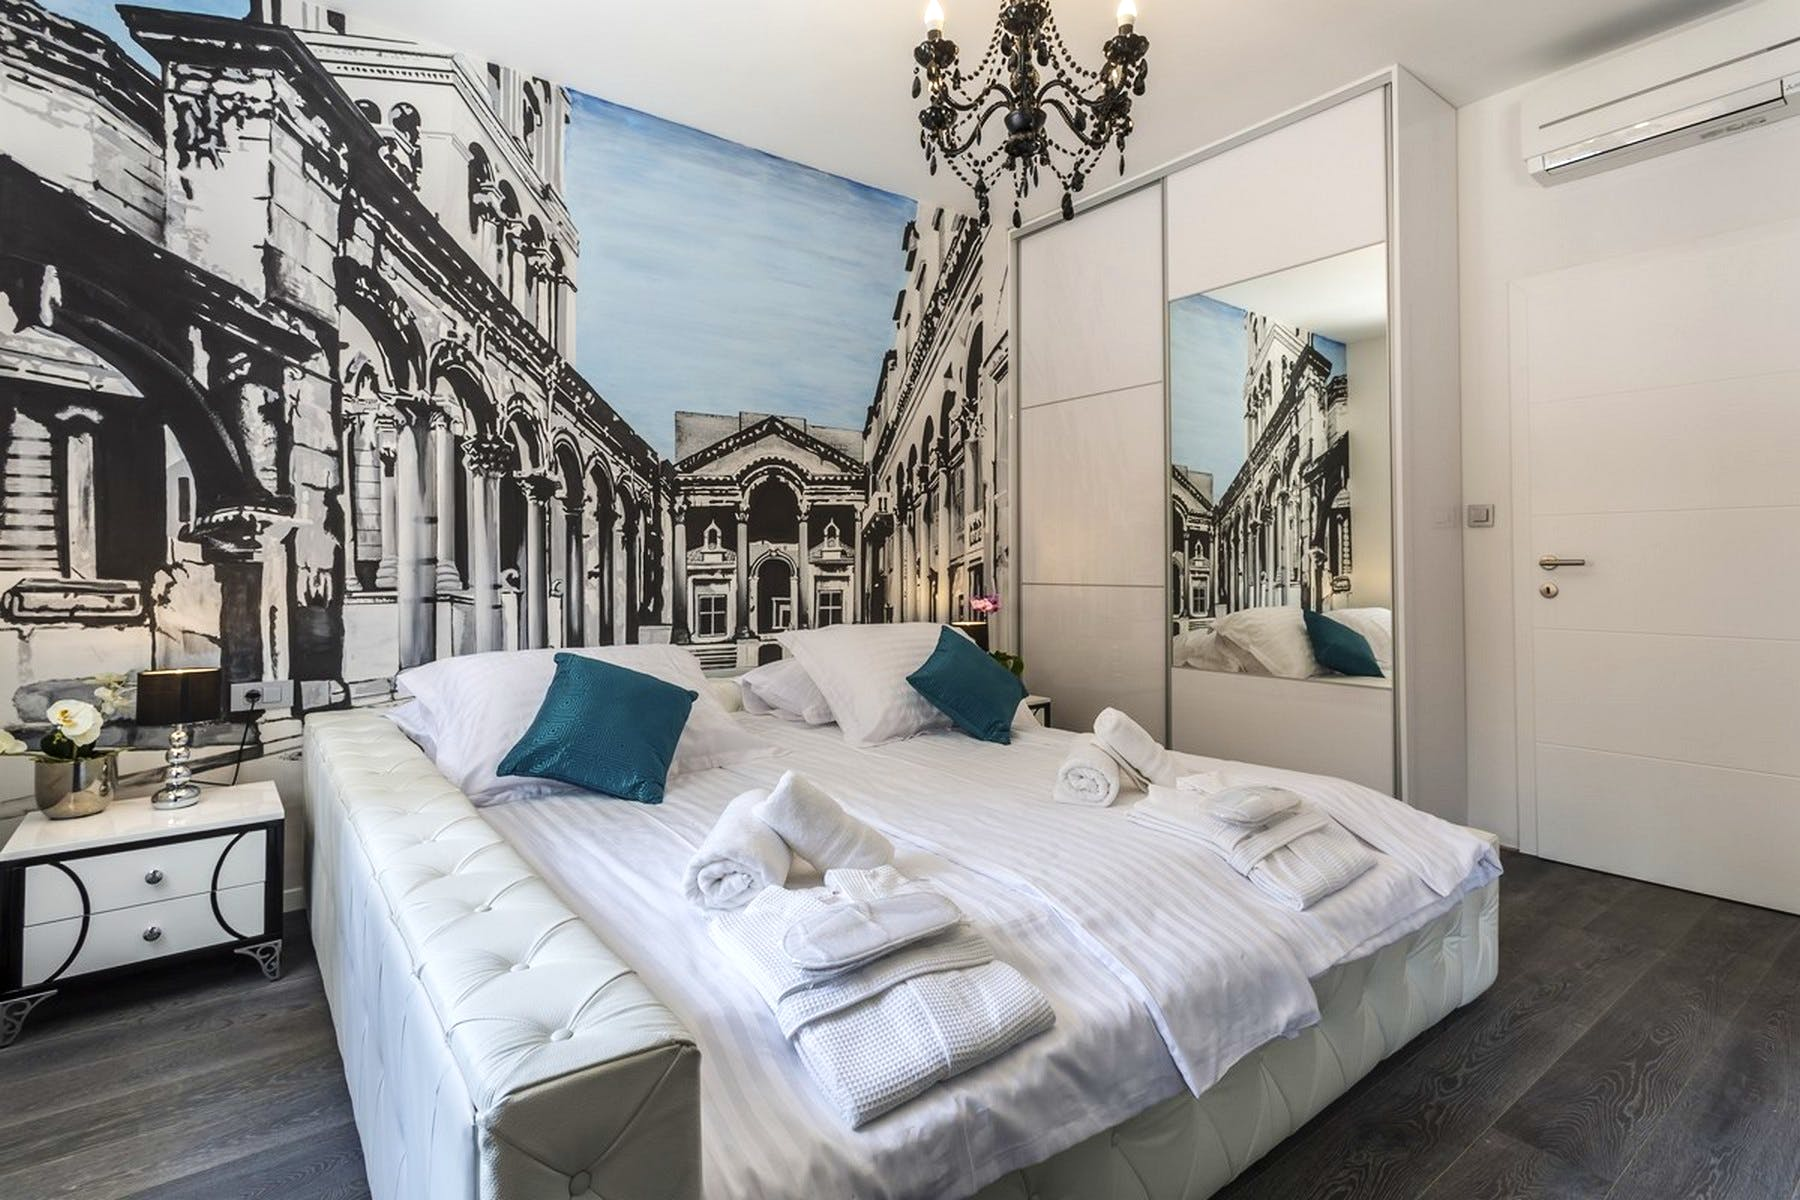 Bedroom with a wall-painting of the Diocletian's palace